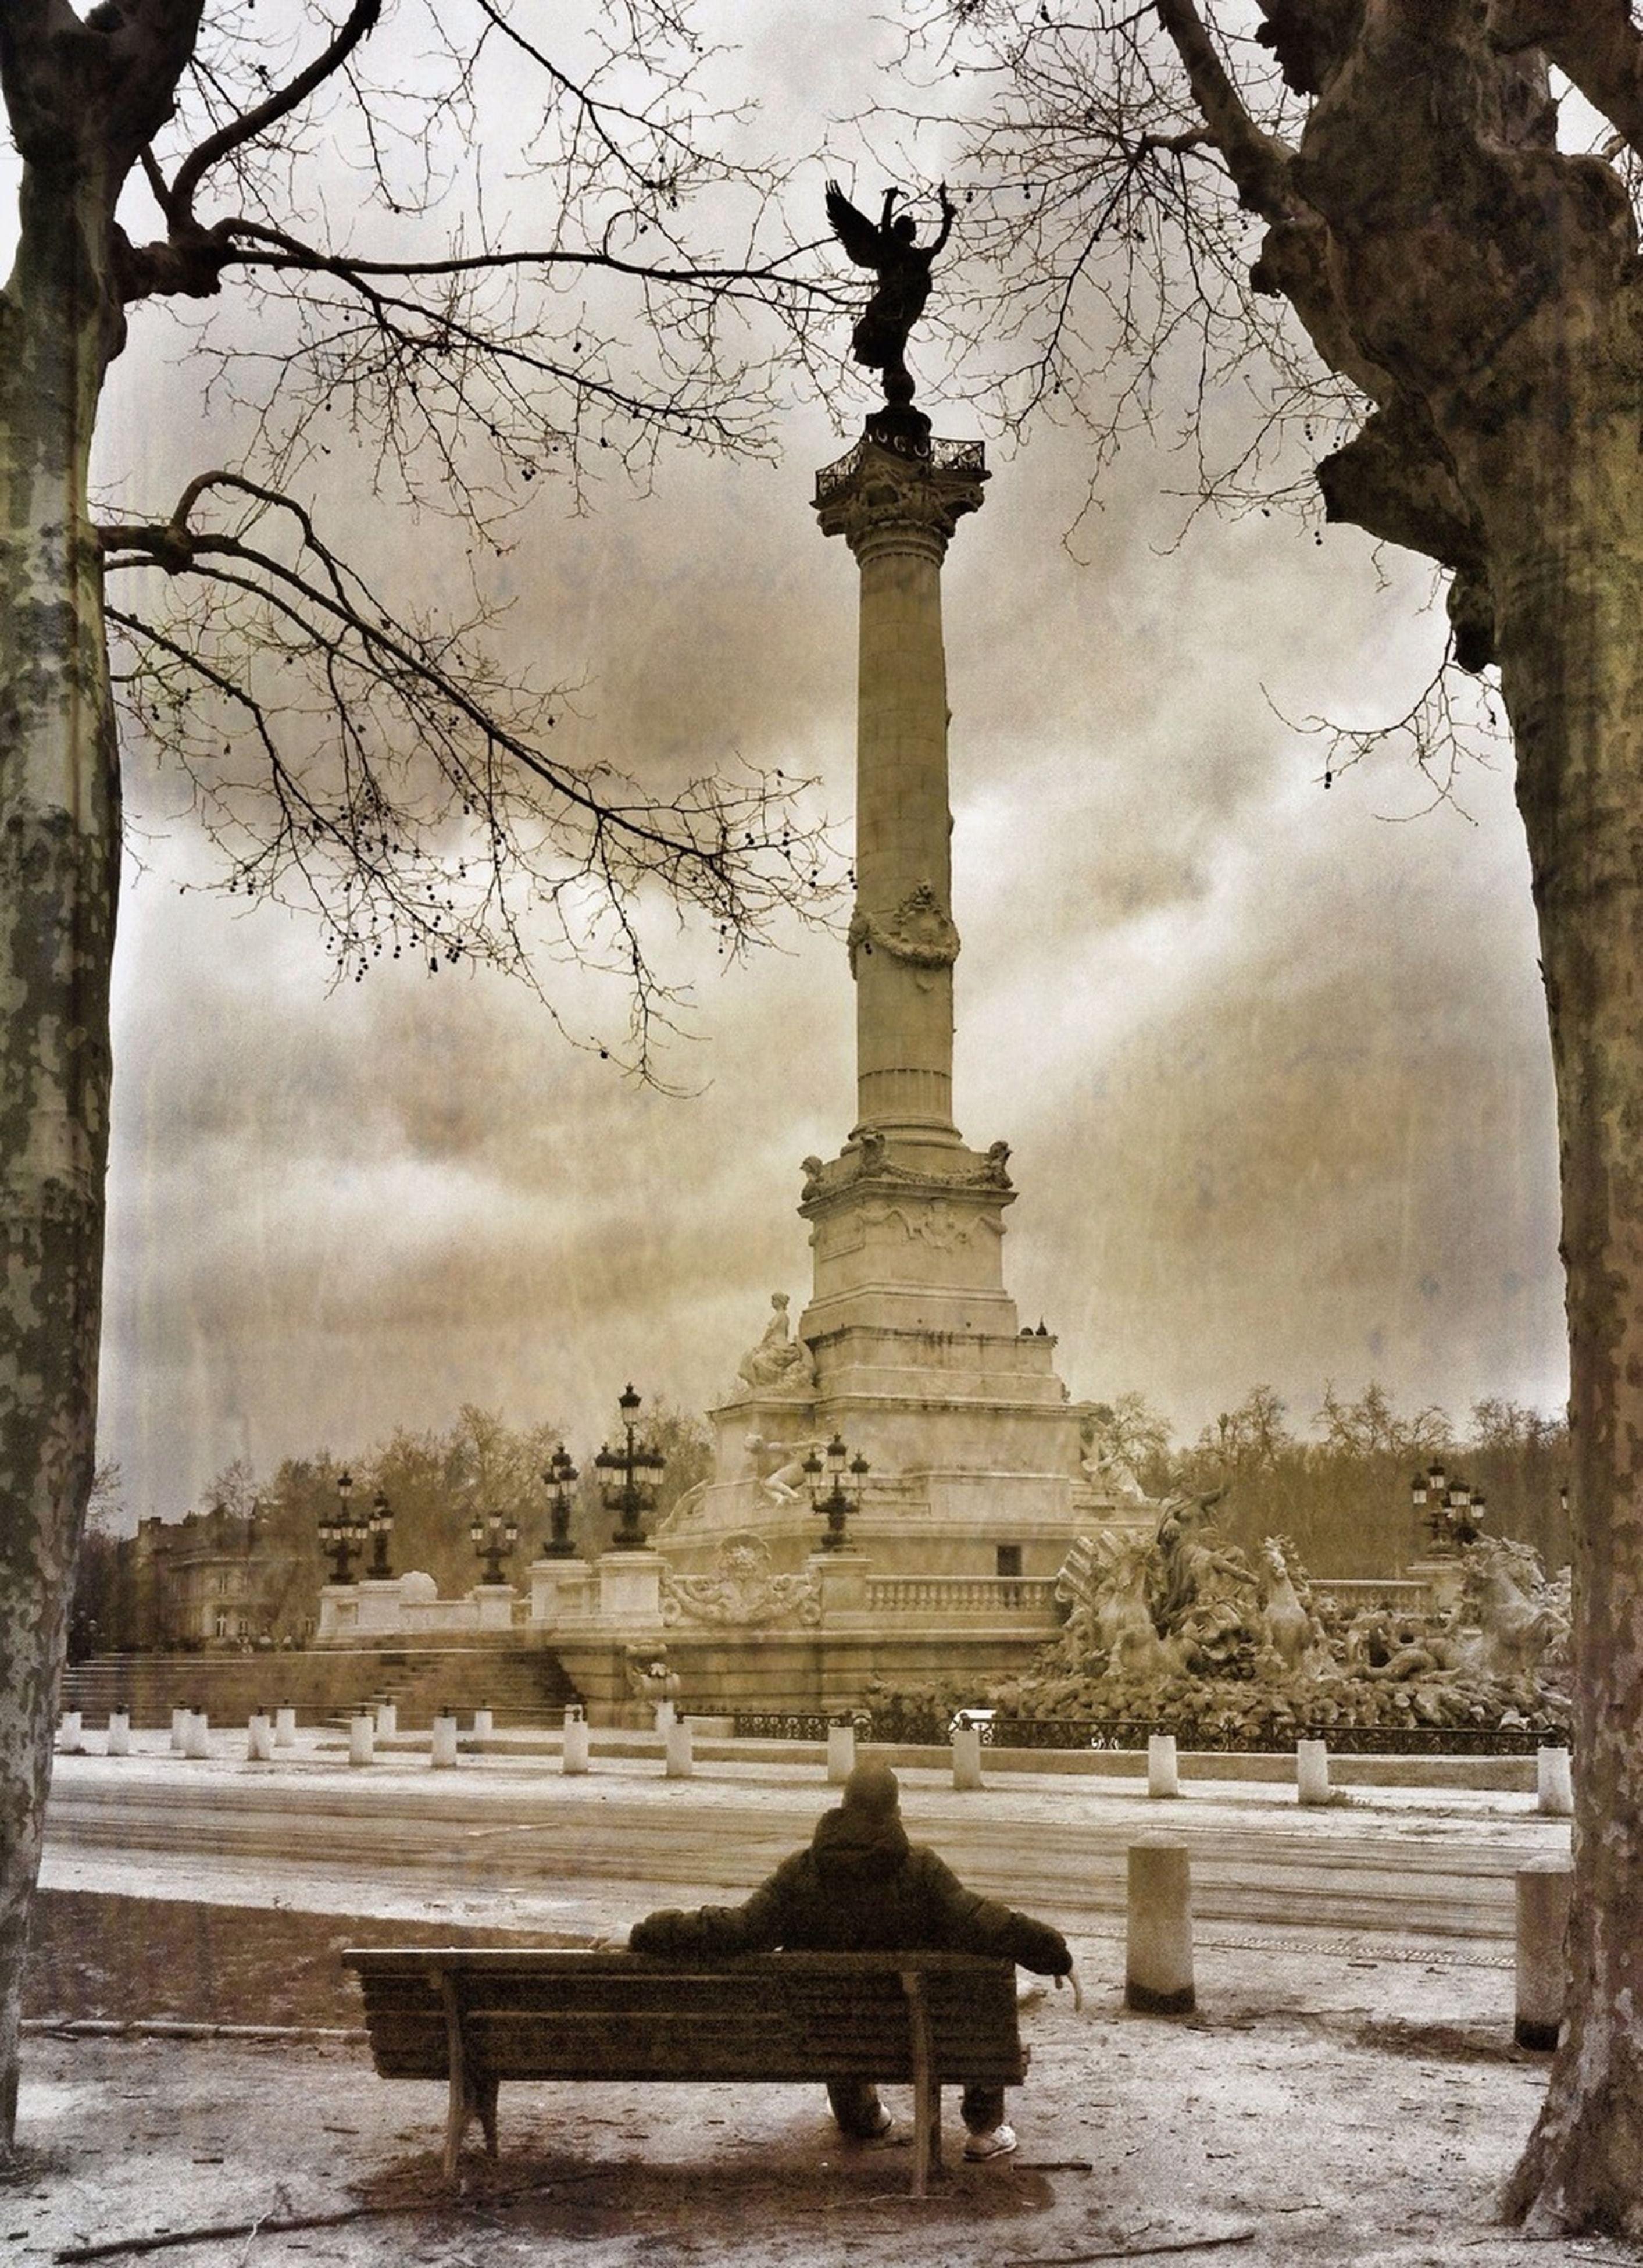 tree, sky, architecture, built structure, cloud - sky, statue, bare tree, building exterior, sculpture, travel destinations, fountain, cloudy, famous place, art and craft, tourism, history, park - man made space, art, weather, water